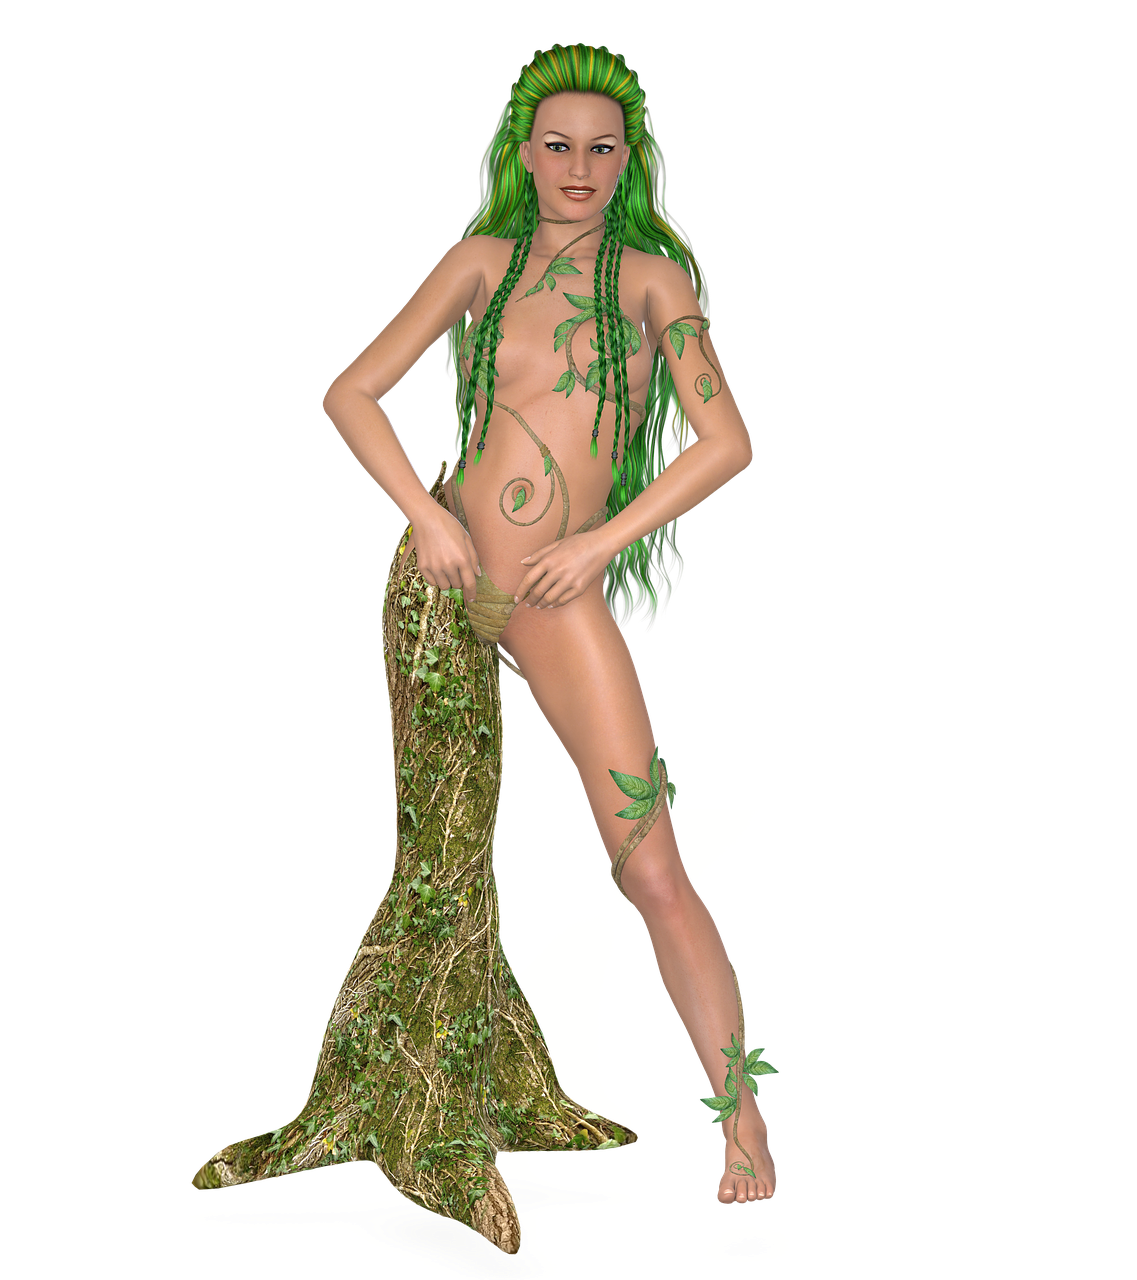 Naked Girl In Clothes